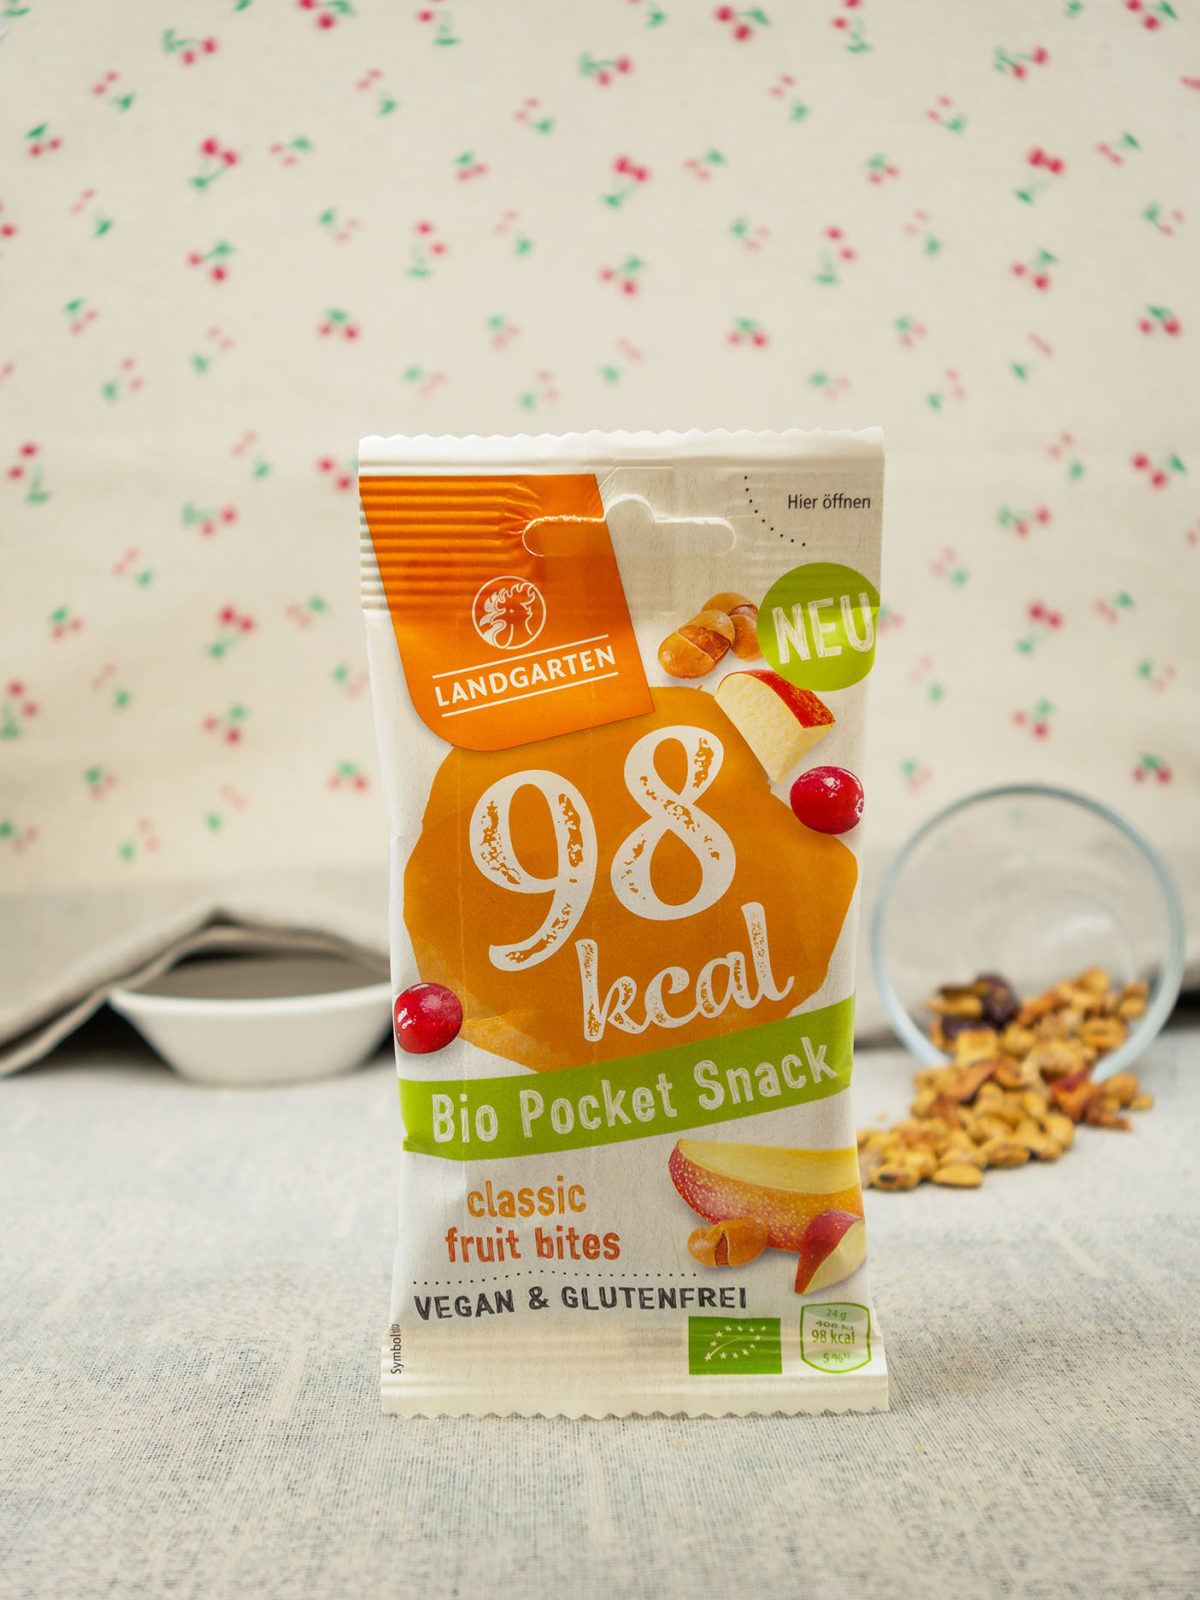 Bio Pocket Snack_98kcal